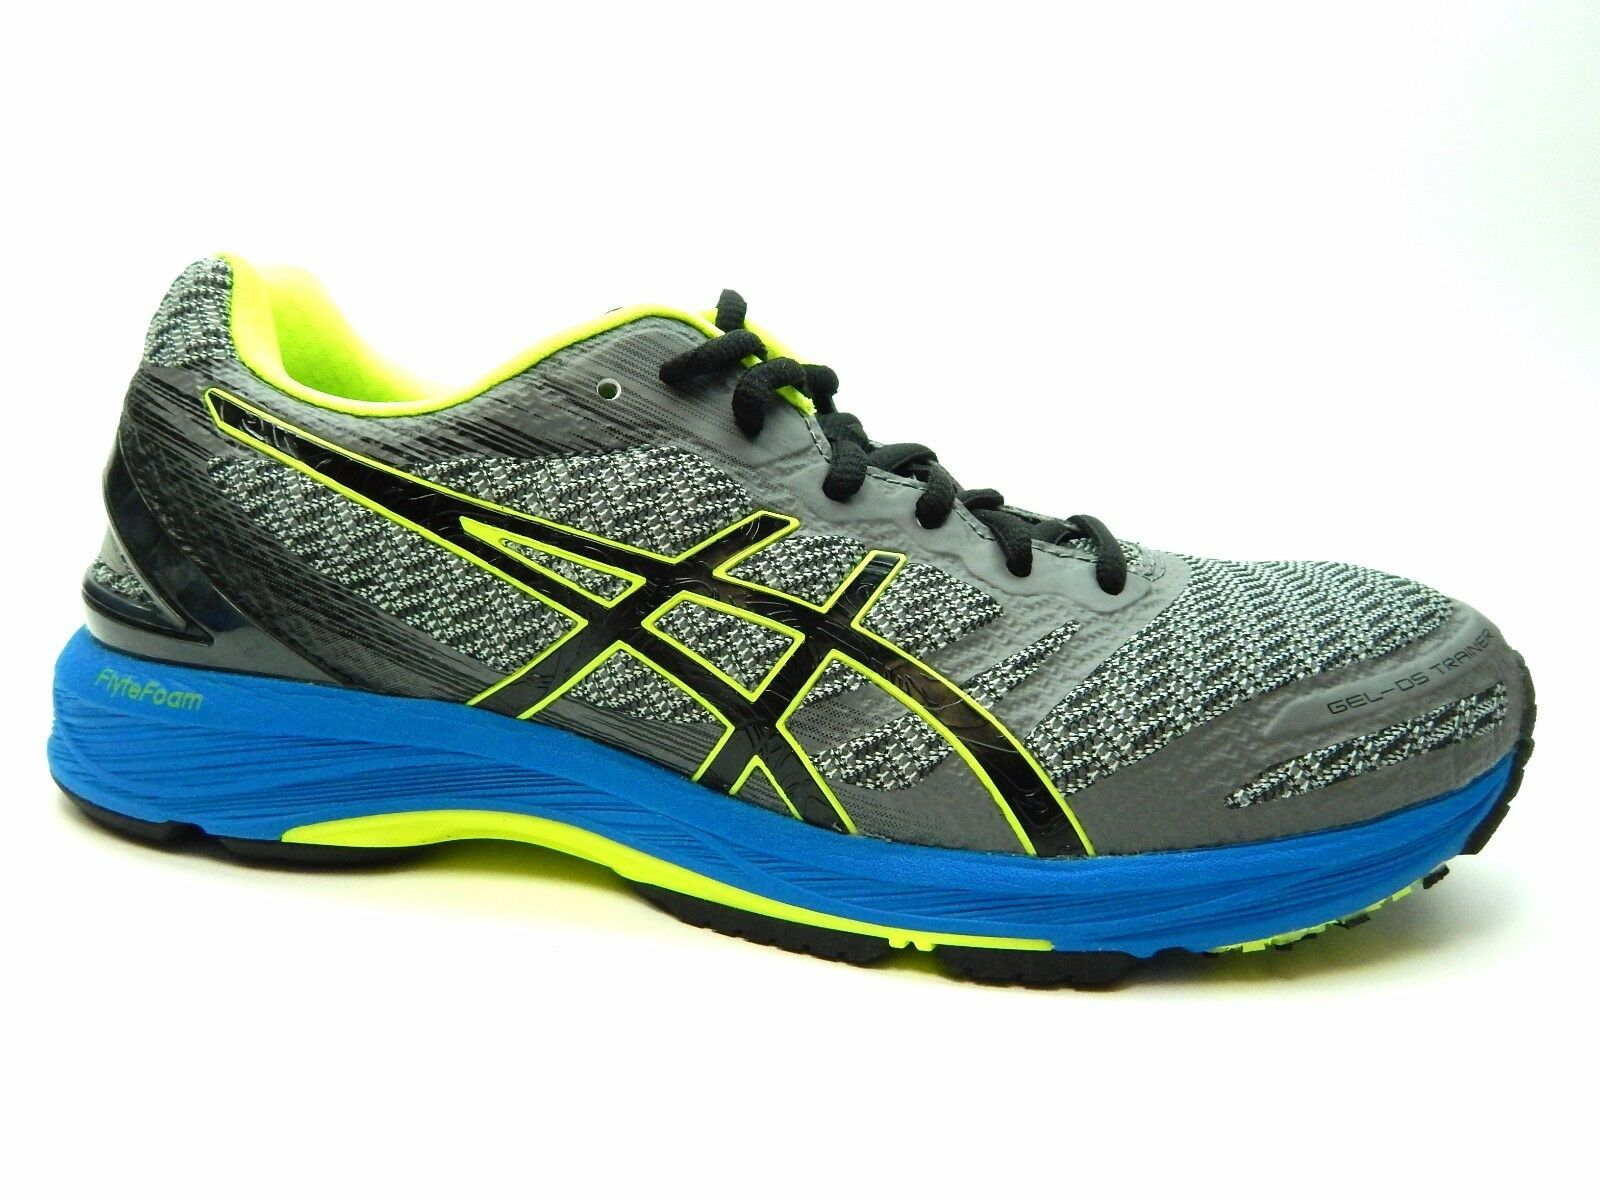 ASICS GEL DS TRAINER 22 CARBON BLACK YELLOW T720N 9790 MEN SHOES SIZE 7 & 8.5